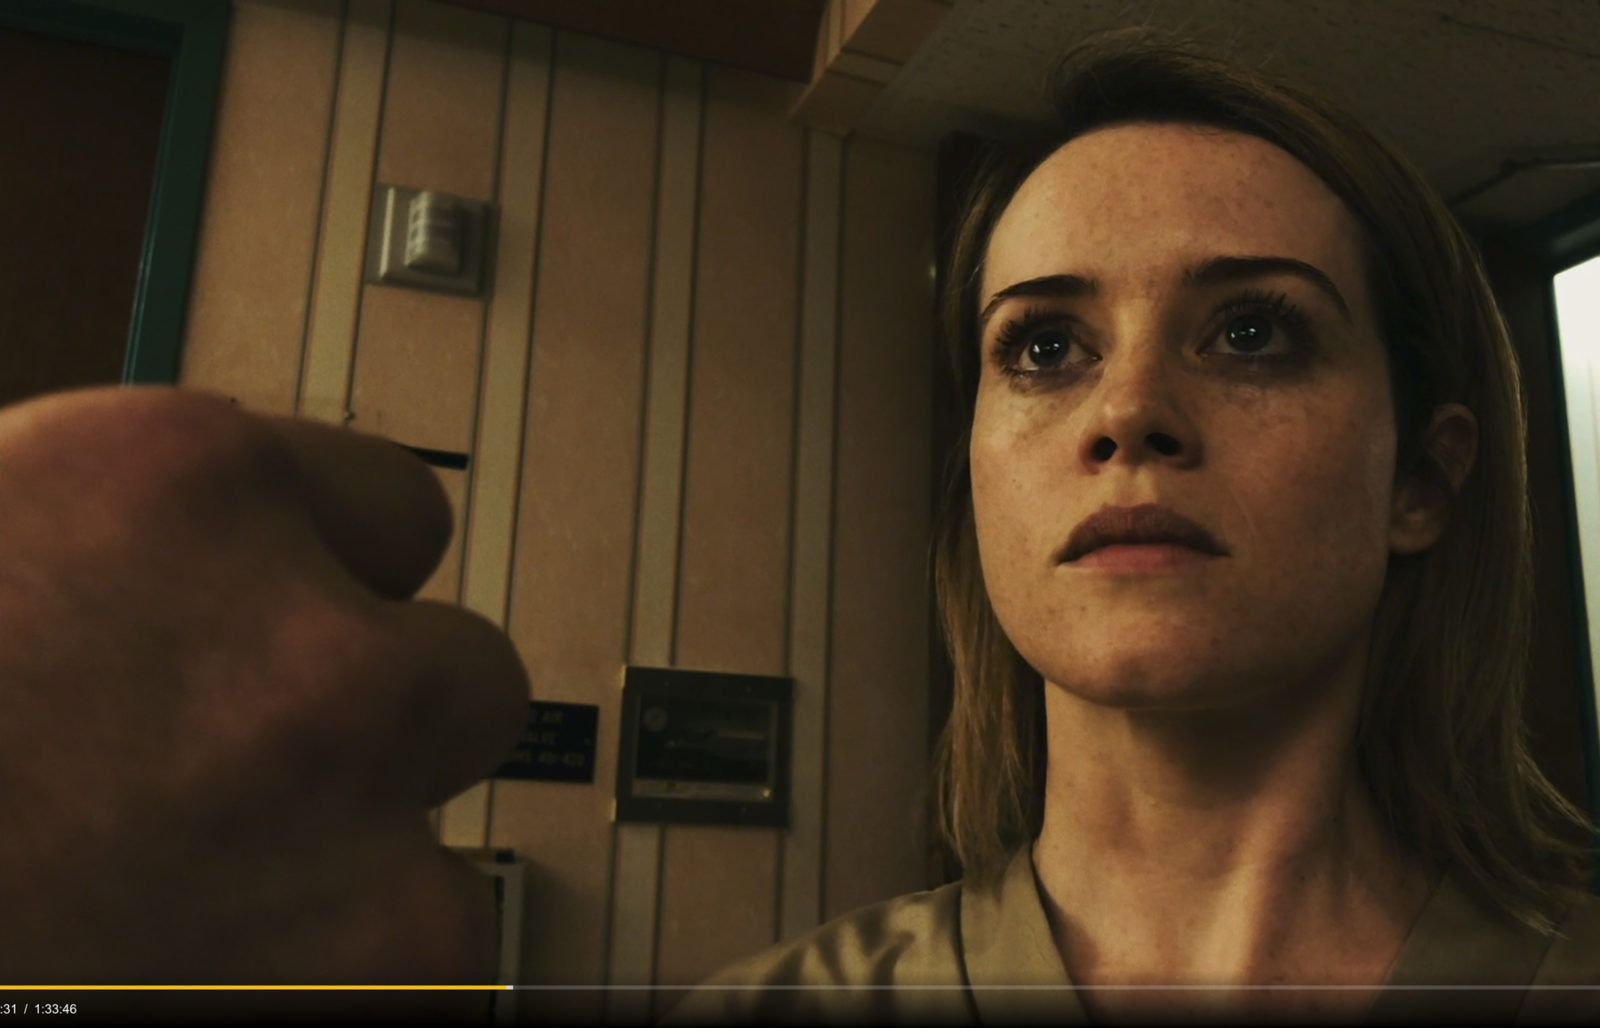 Still frame from Steven Soderbergh's Unsane - A feature film shot on iPhone 7+